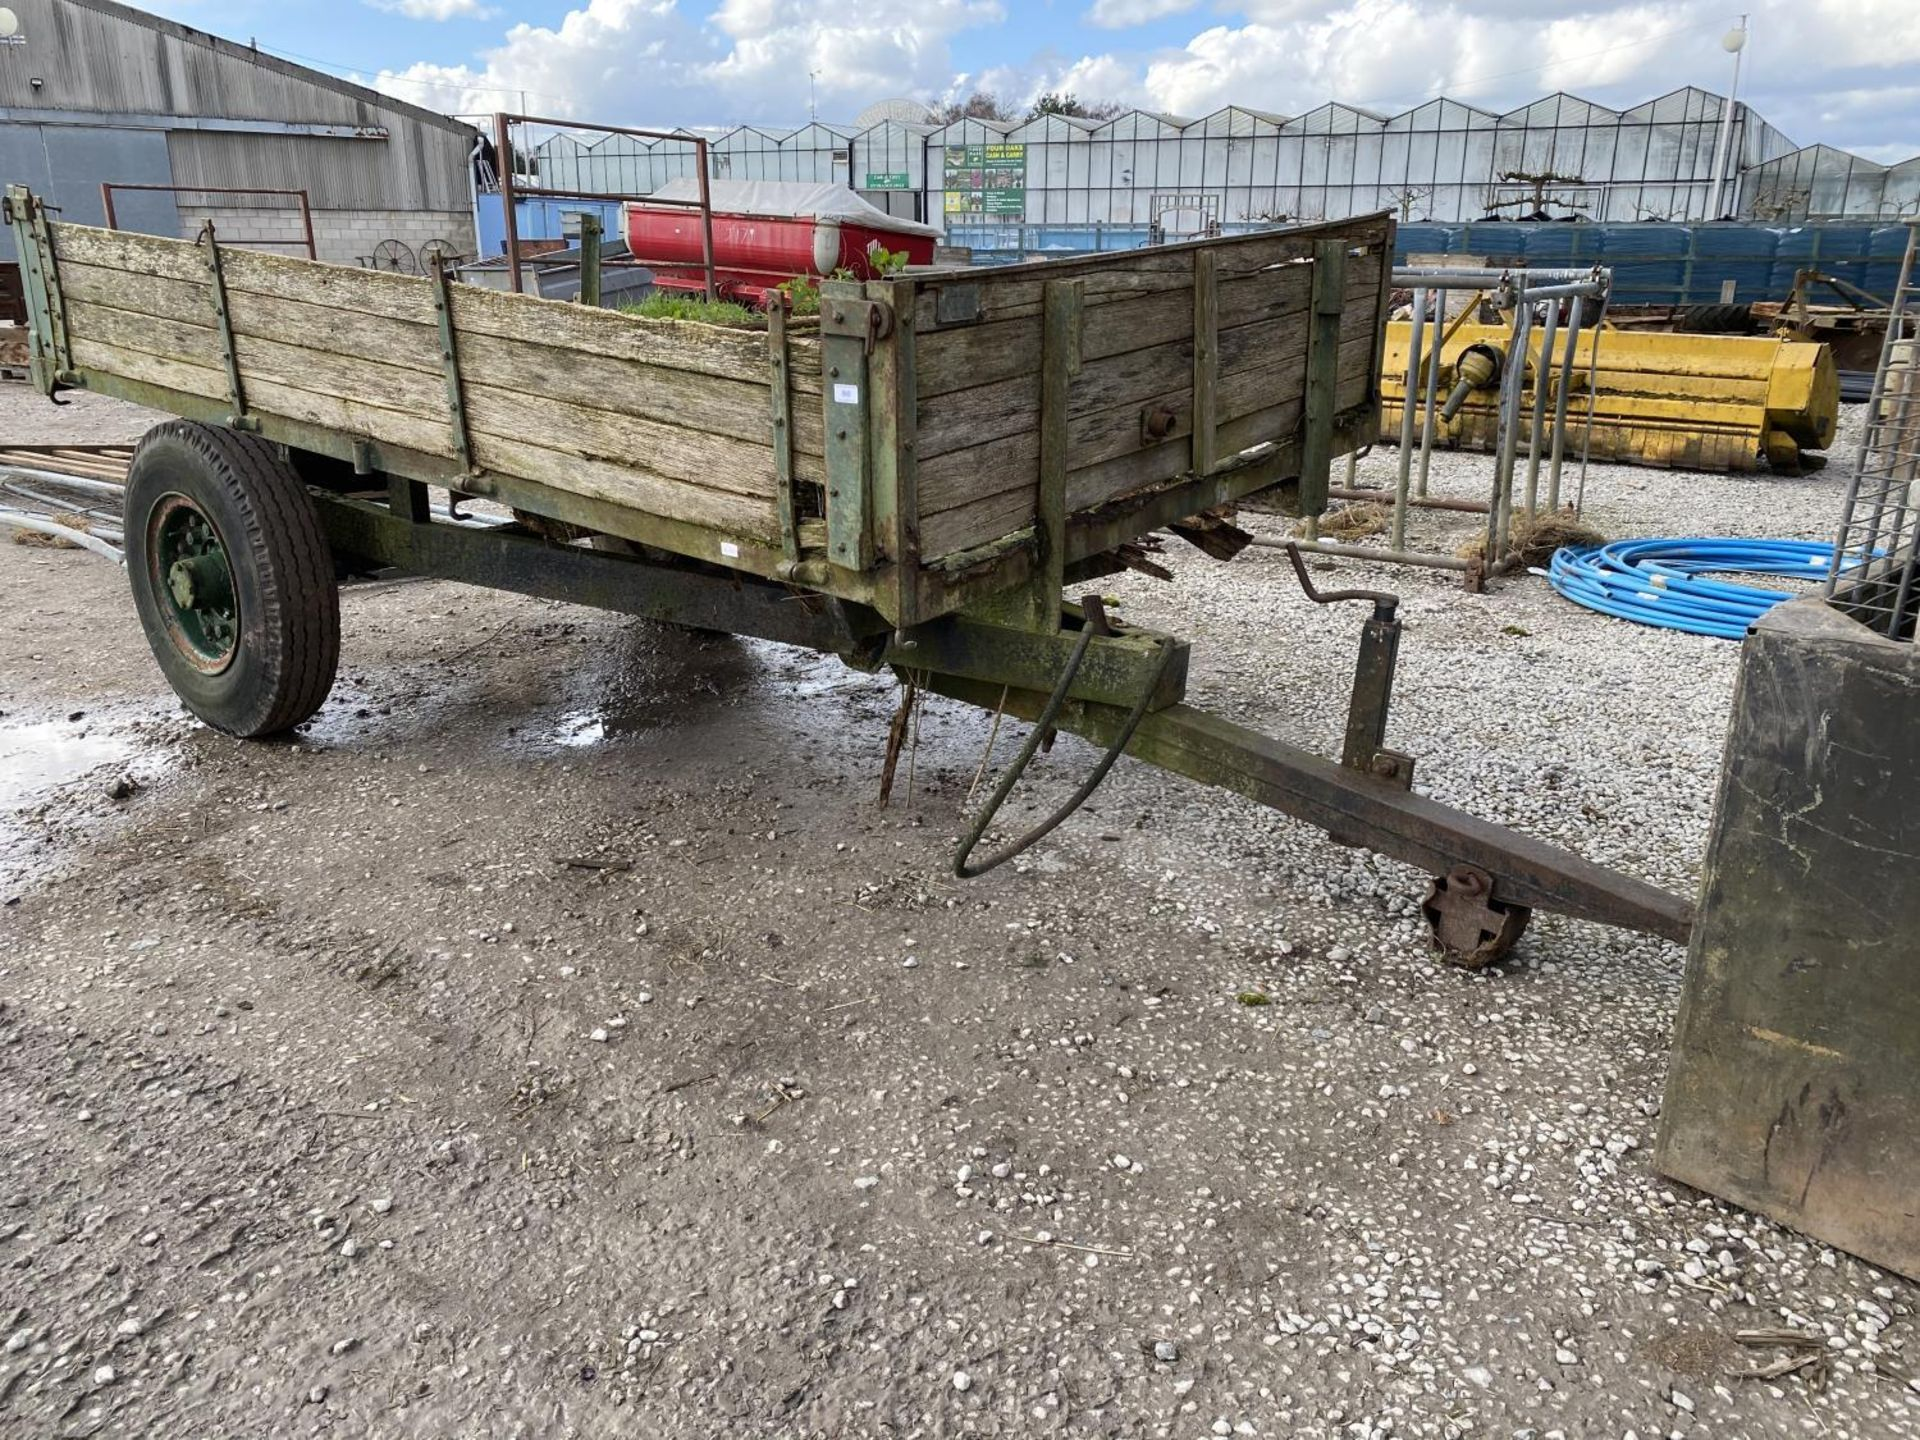 A TRACTOR TRAILER - IN NEED OF REPAIR + VAT